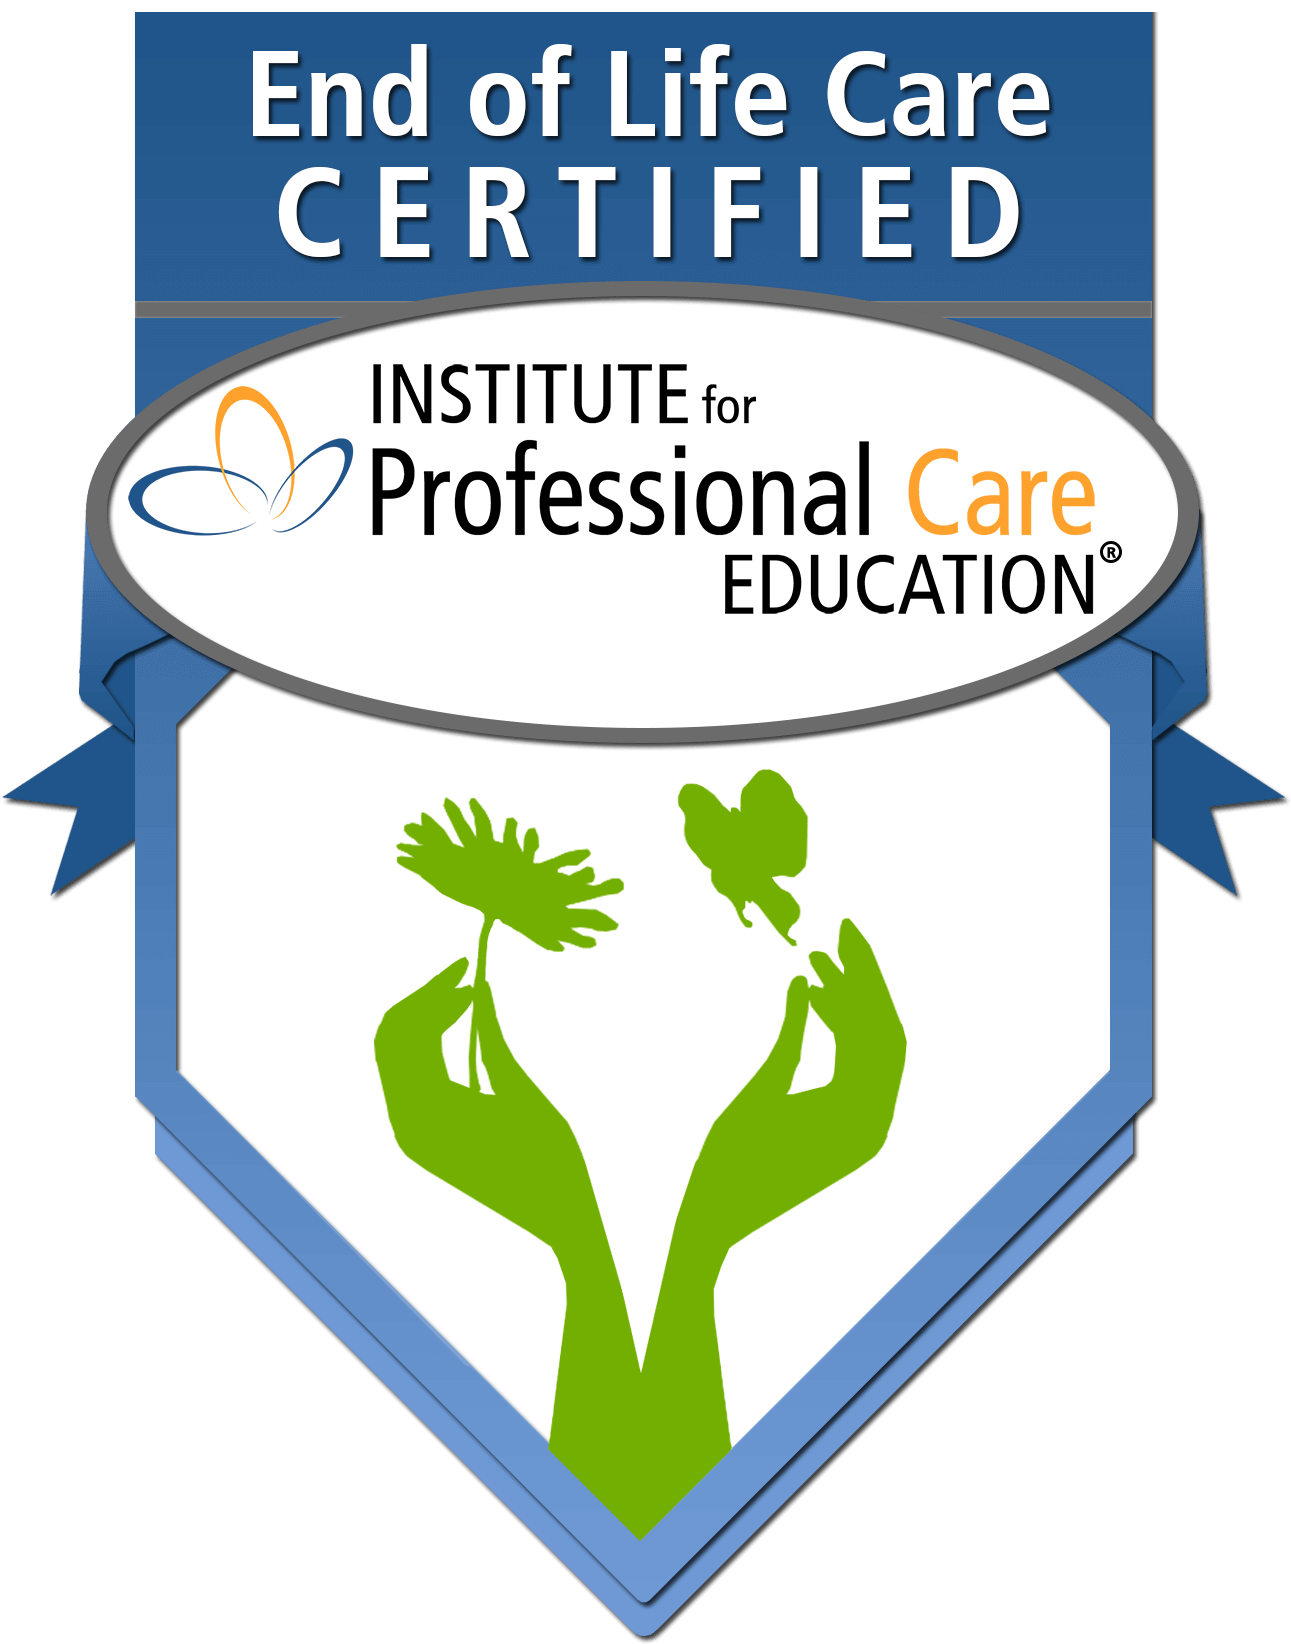 Homecare Agency is End of Life Care Certified by Institute for Professional Care Education